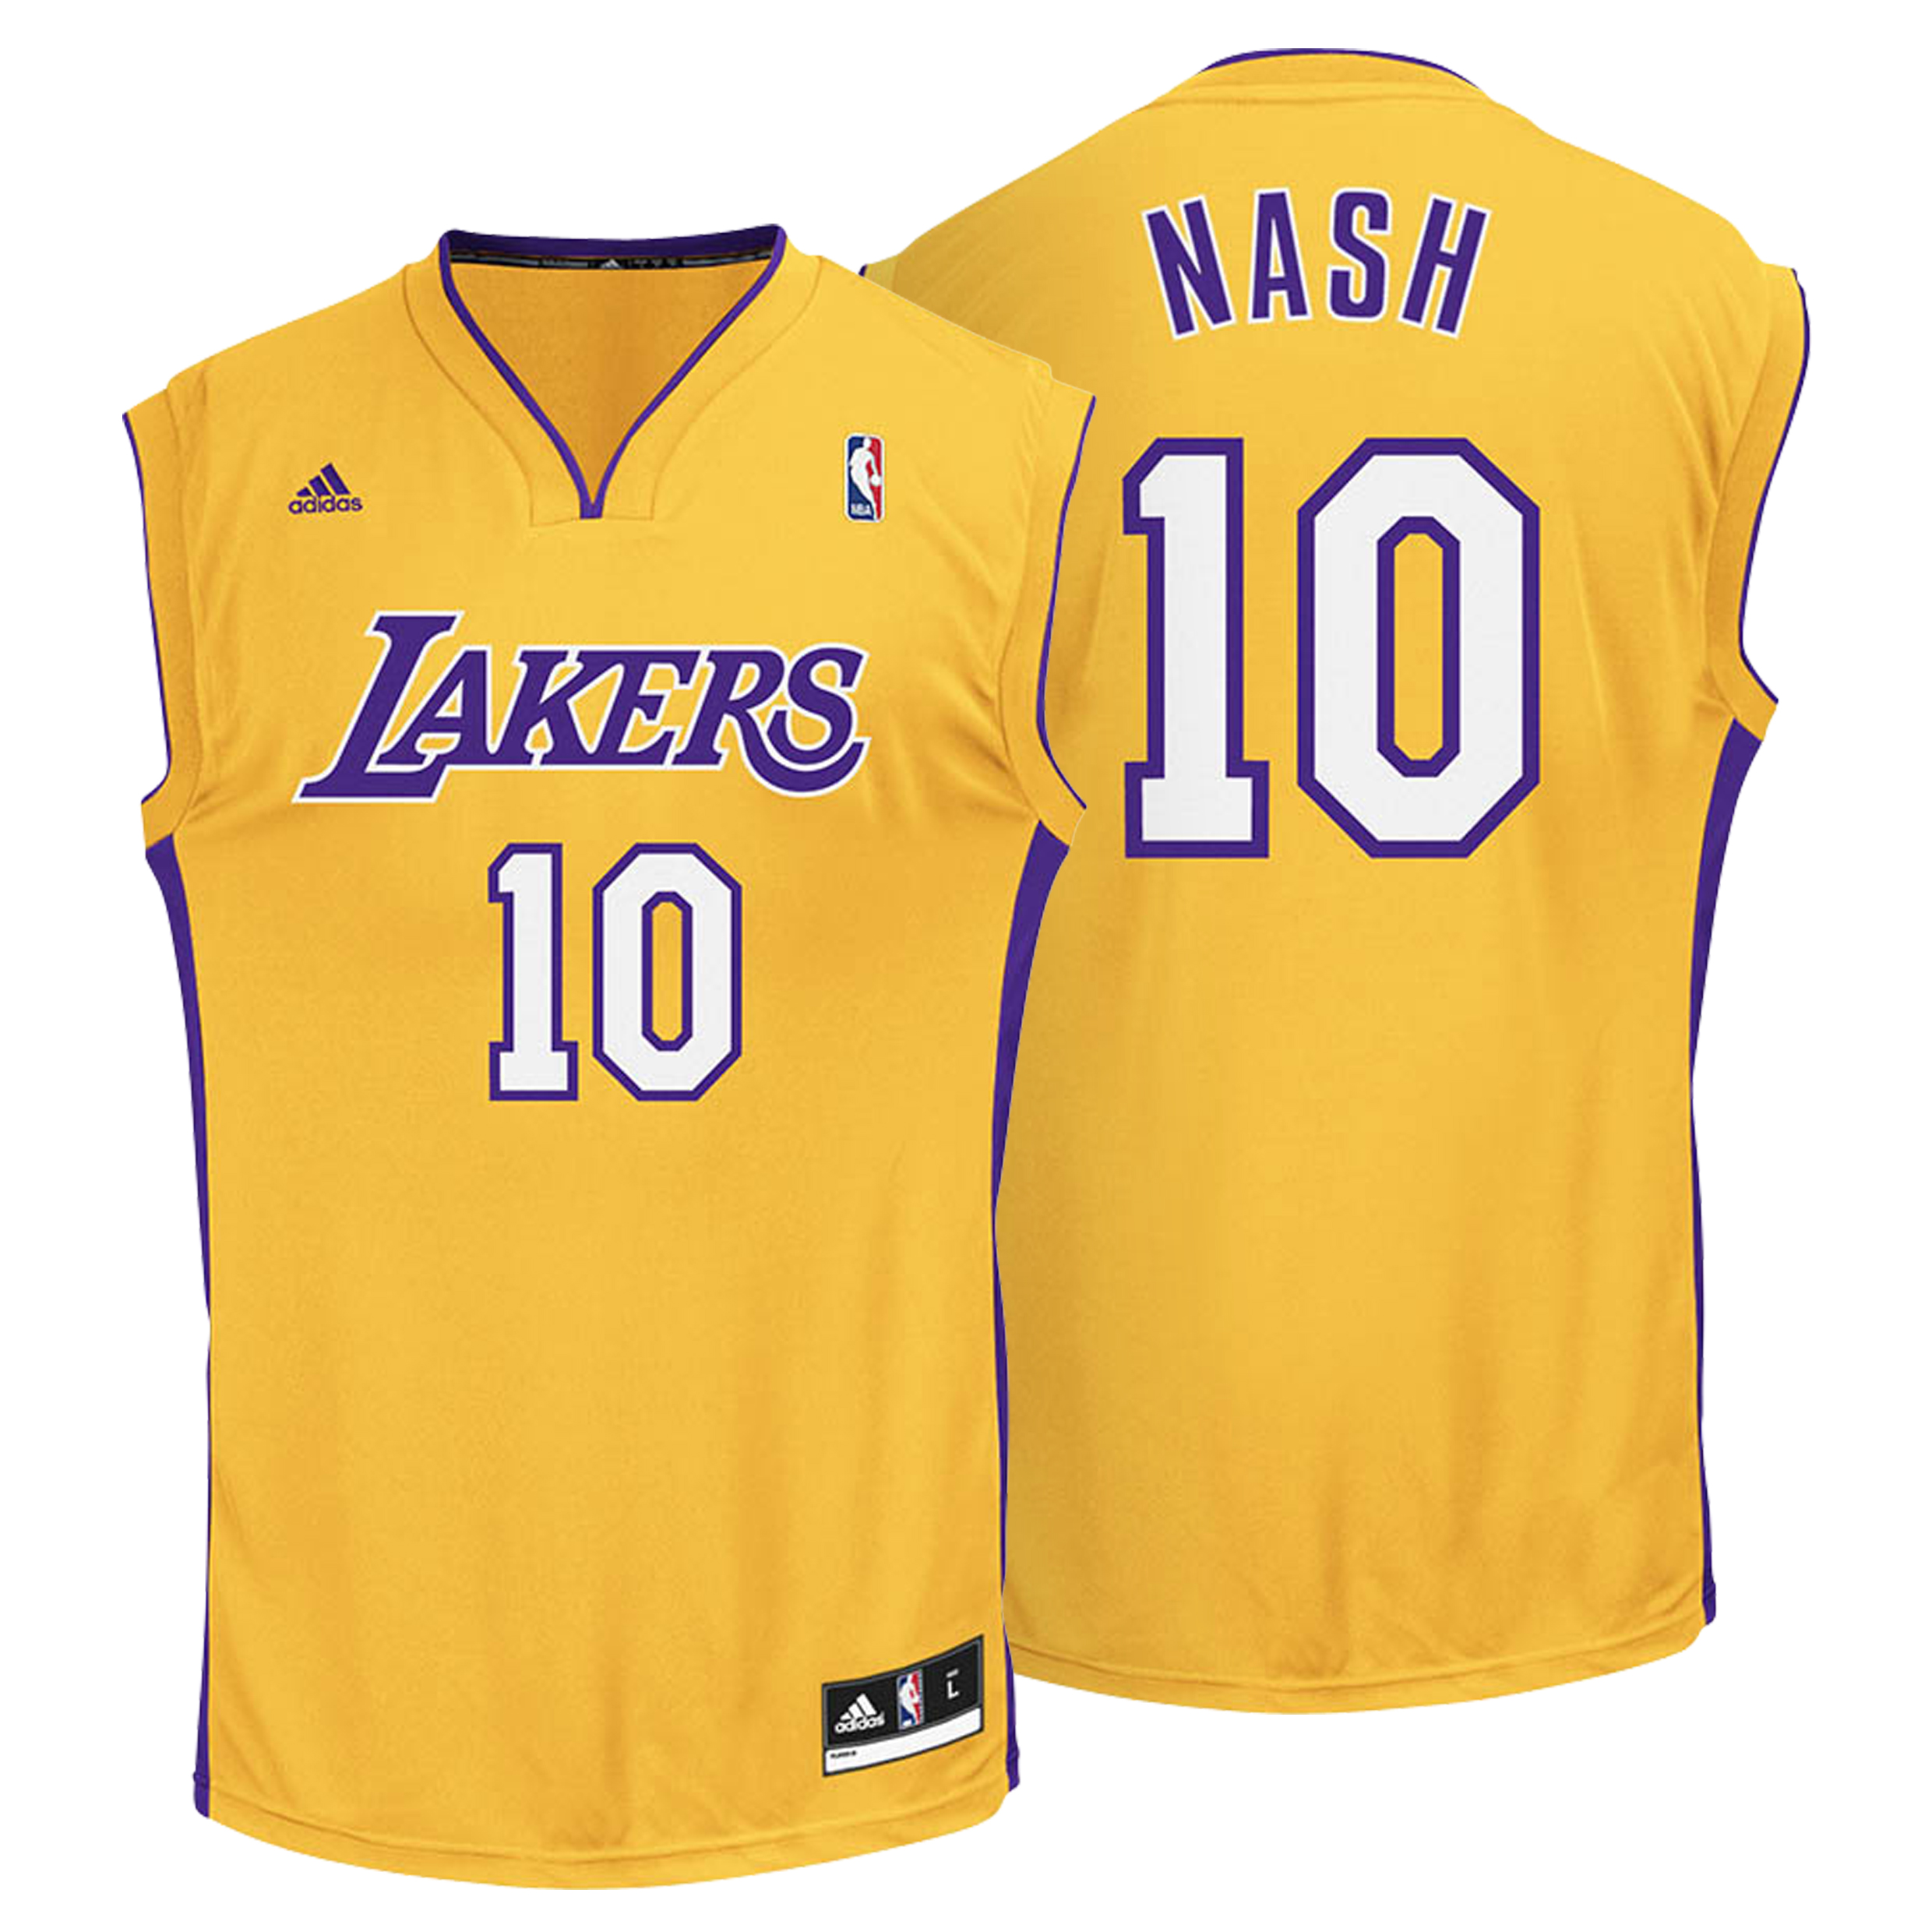 Los Angeles Lakers Home Gold Replica Jersey - Steve Nash - Mens